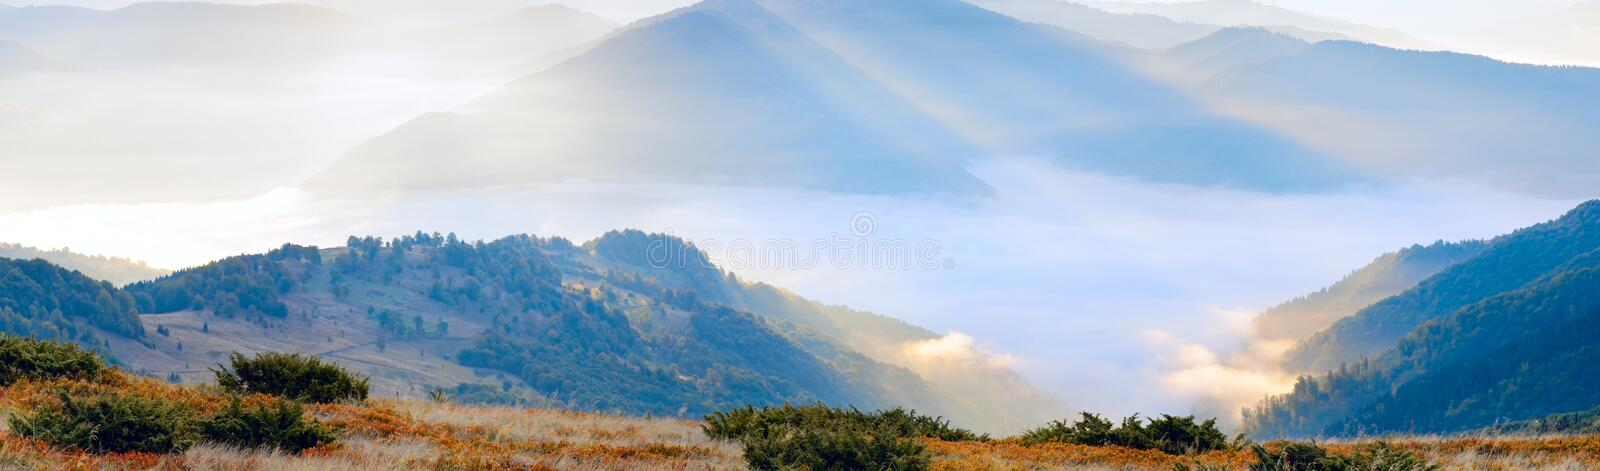 Download Mountain Hazy Daybreak With Sunbeam And Haze Stock Photo - Image: 14915790